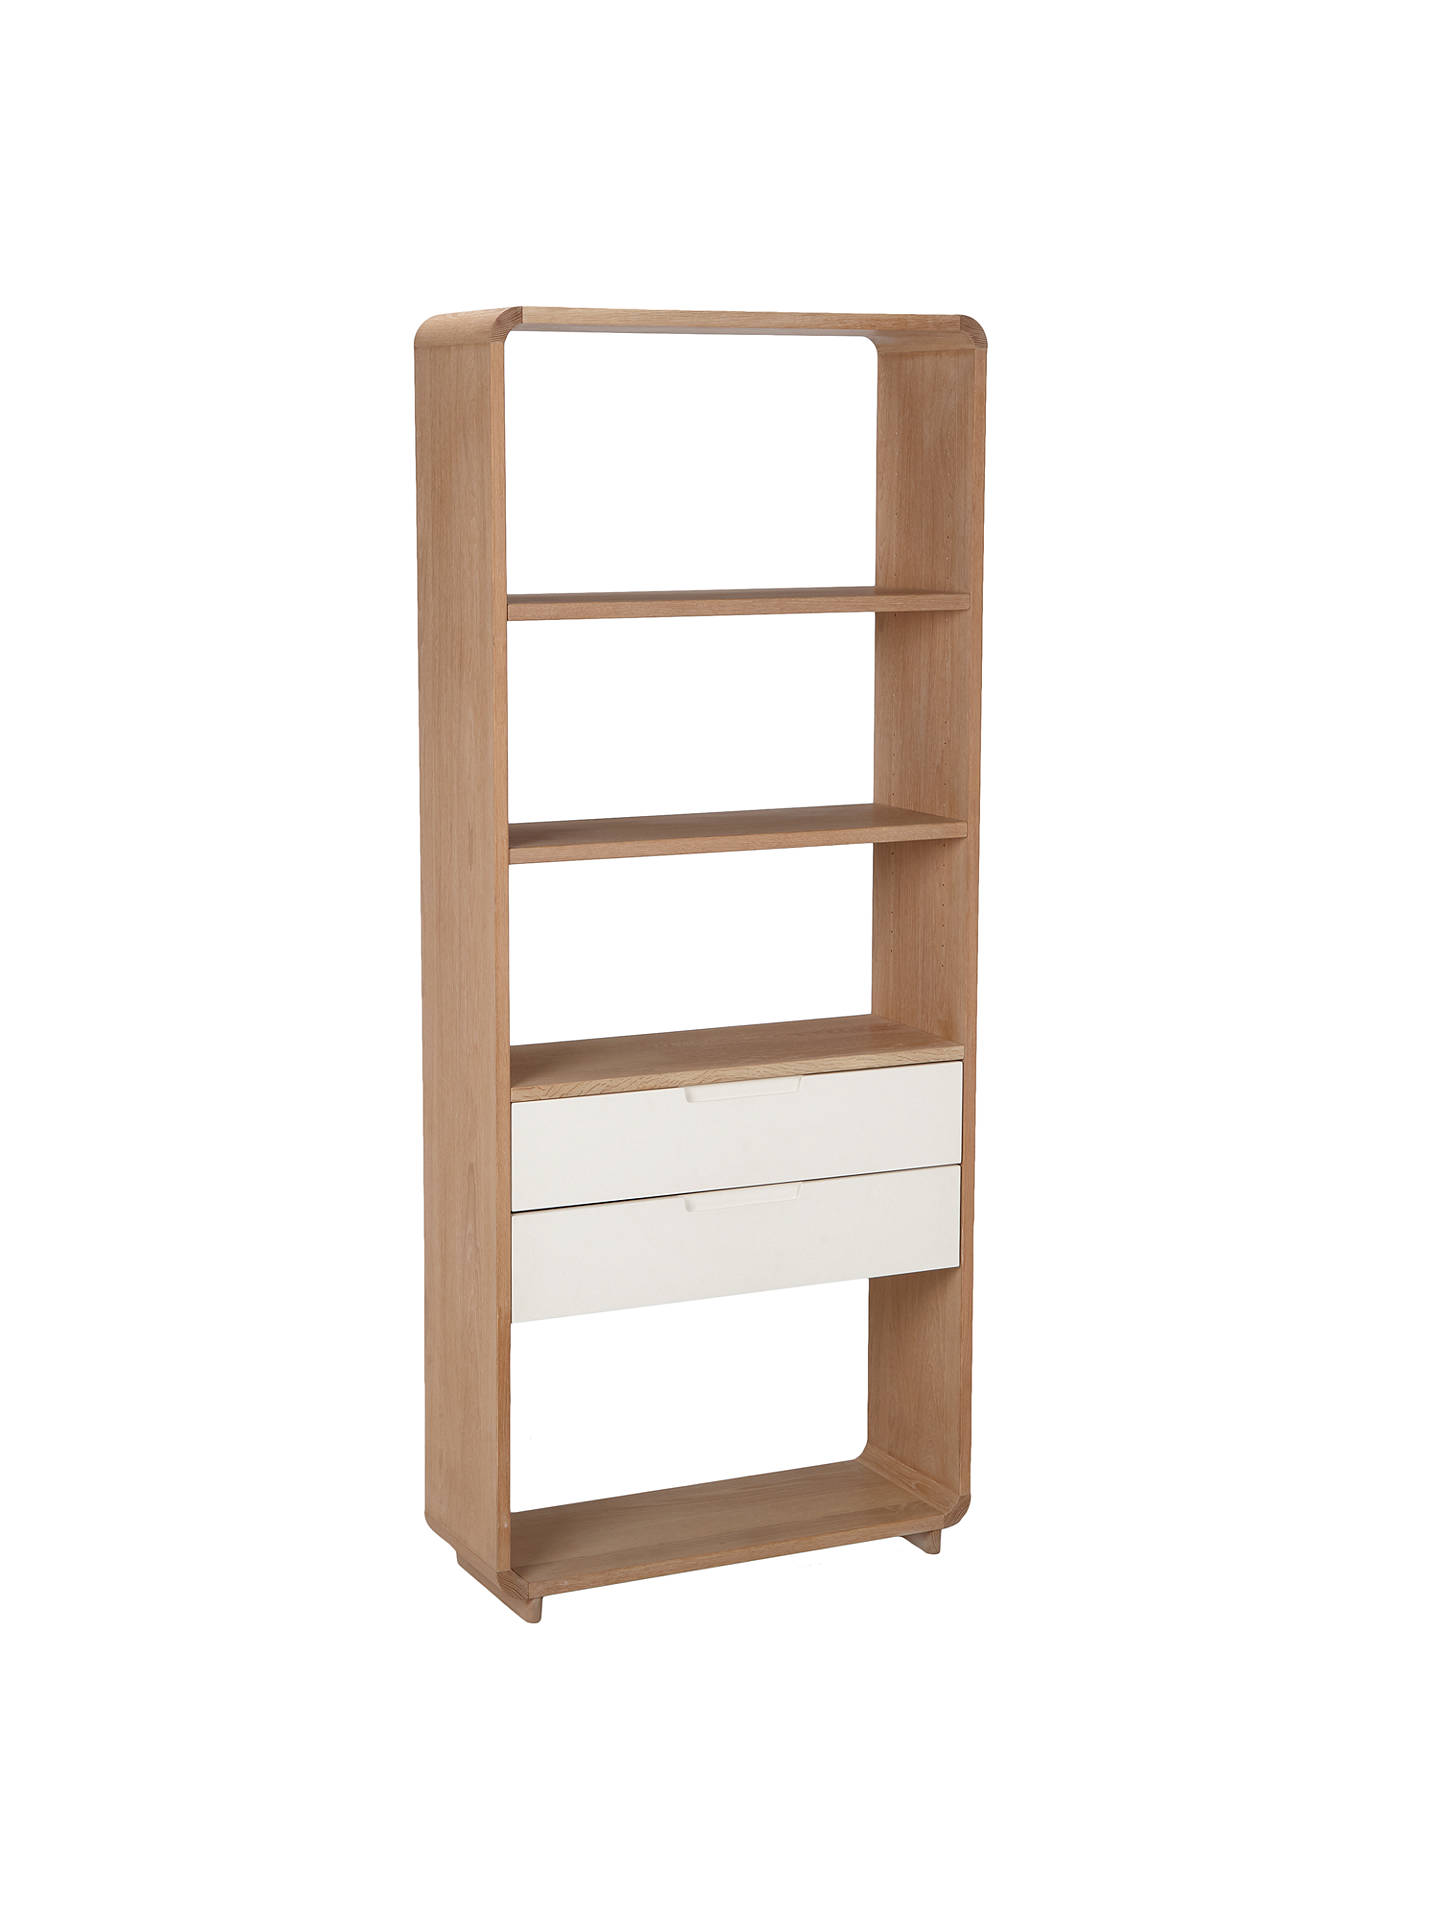 Buy Ebbe Gehl for John Lewis Mira 2 Drawer Bookcase, Wide Online at johnlewis.com